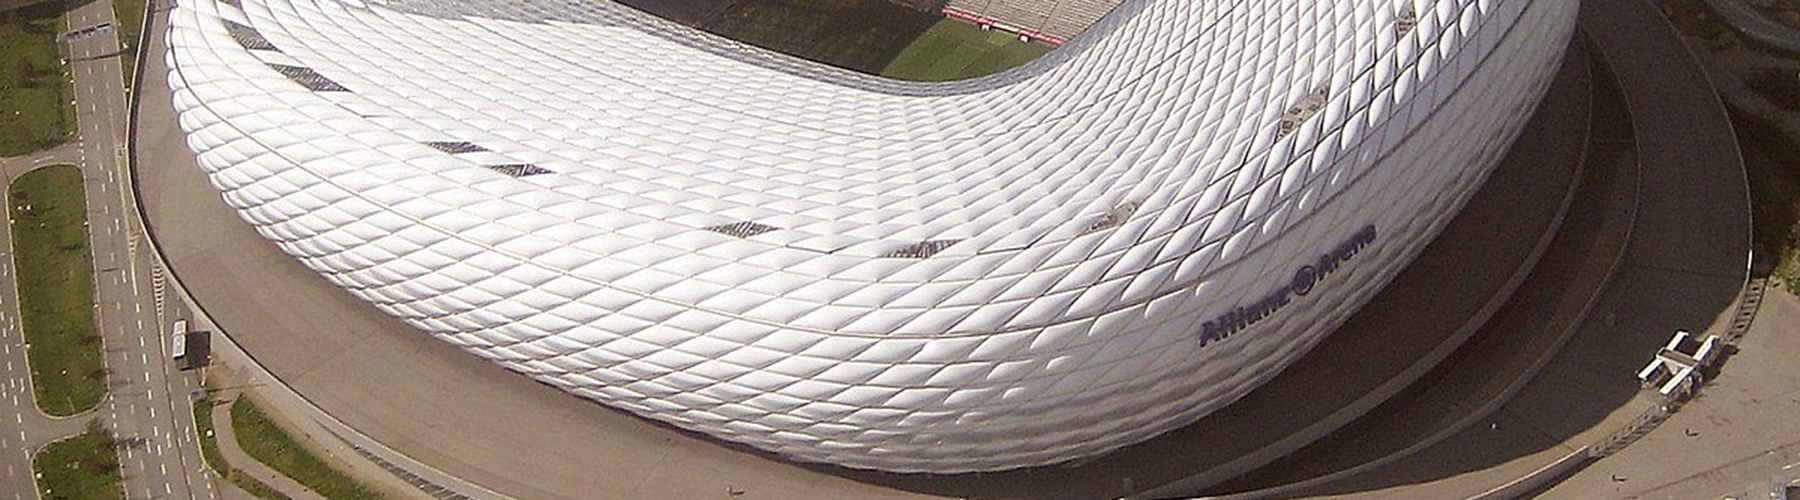 Munich – Hostels close to Allianz Arena. Maps for Munich, Photos and Reviews for each hostel in Munich.